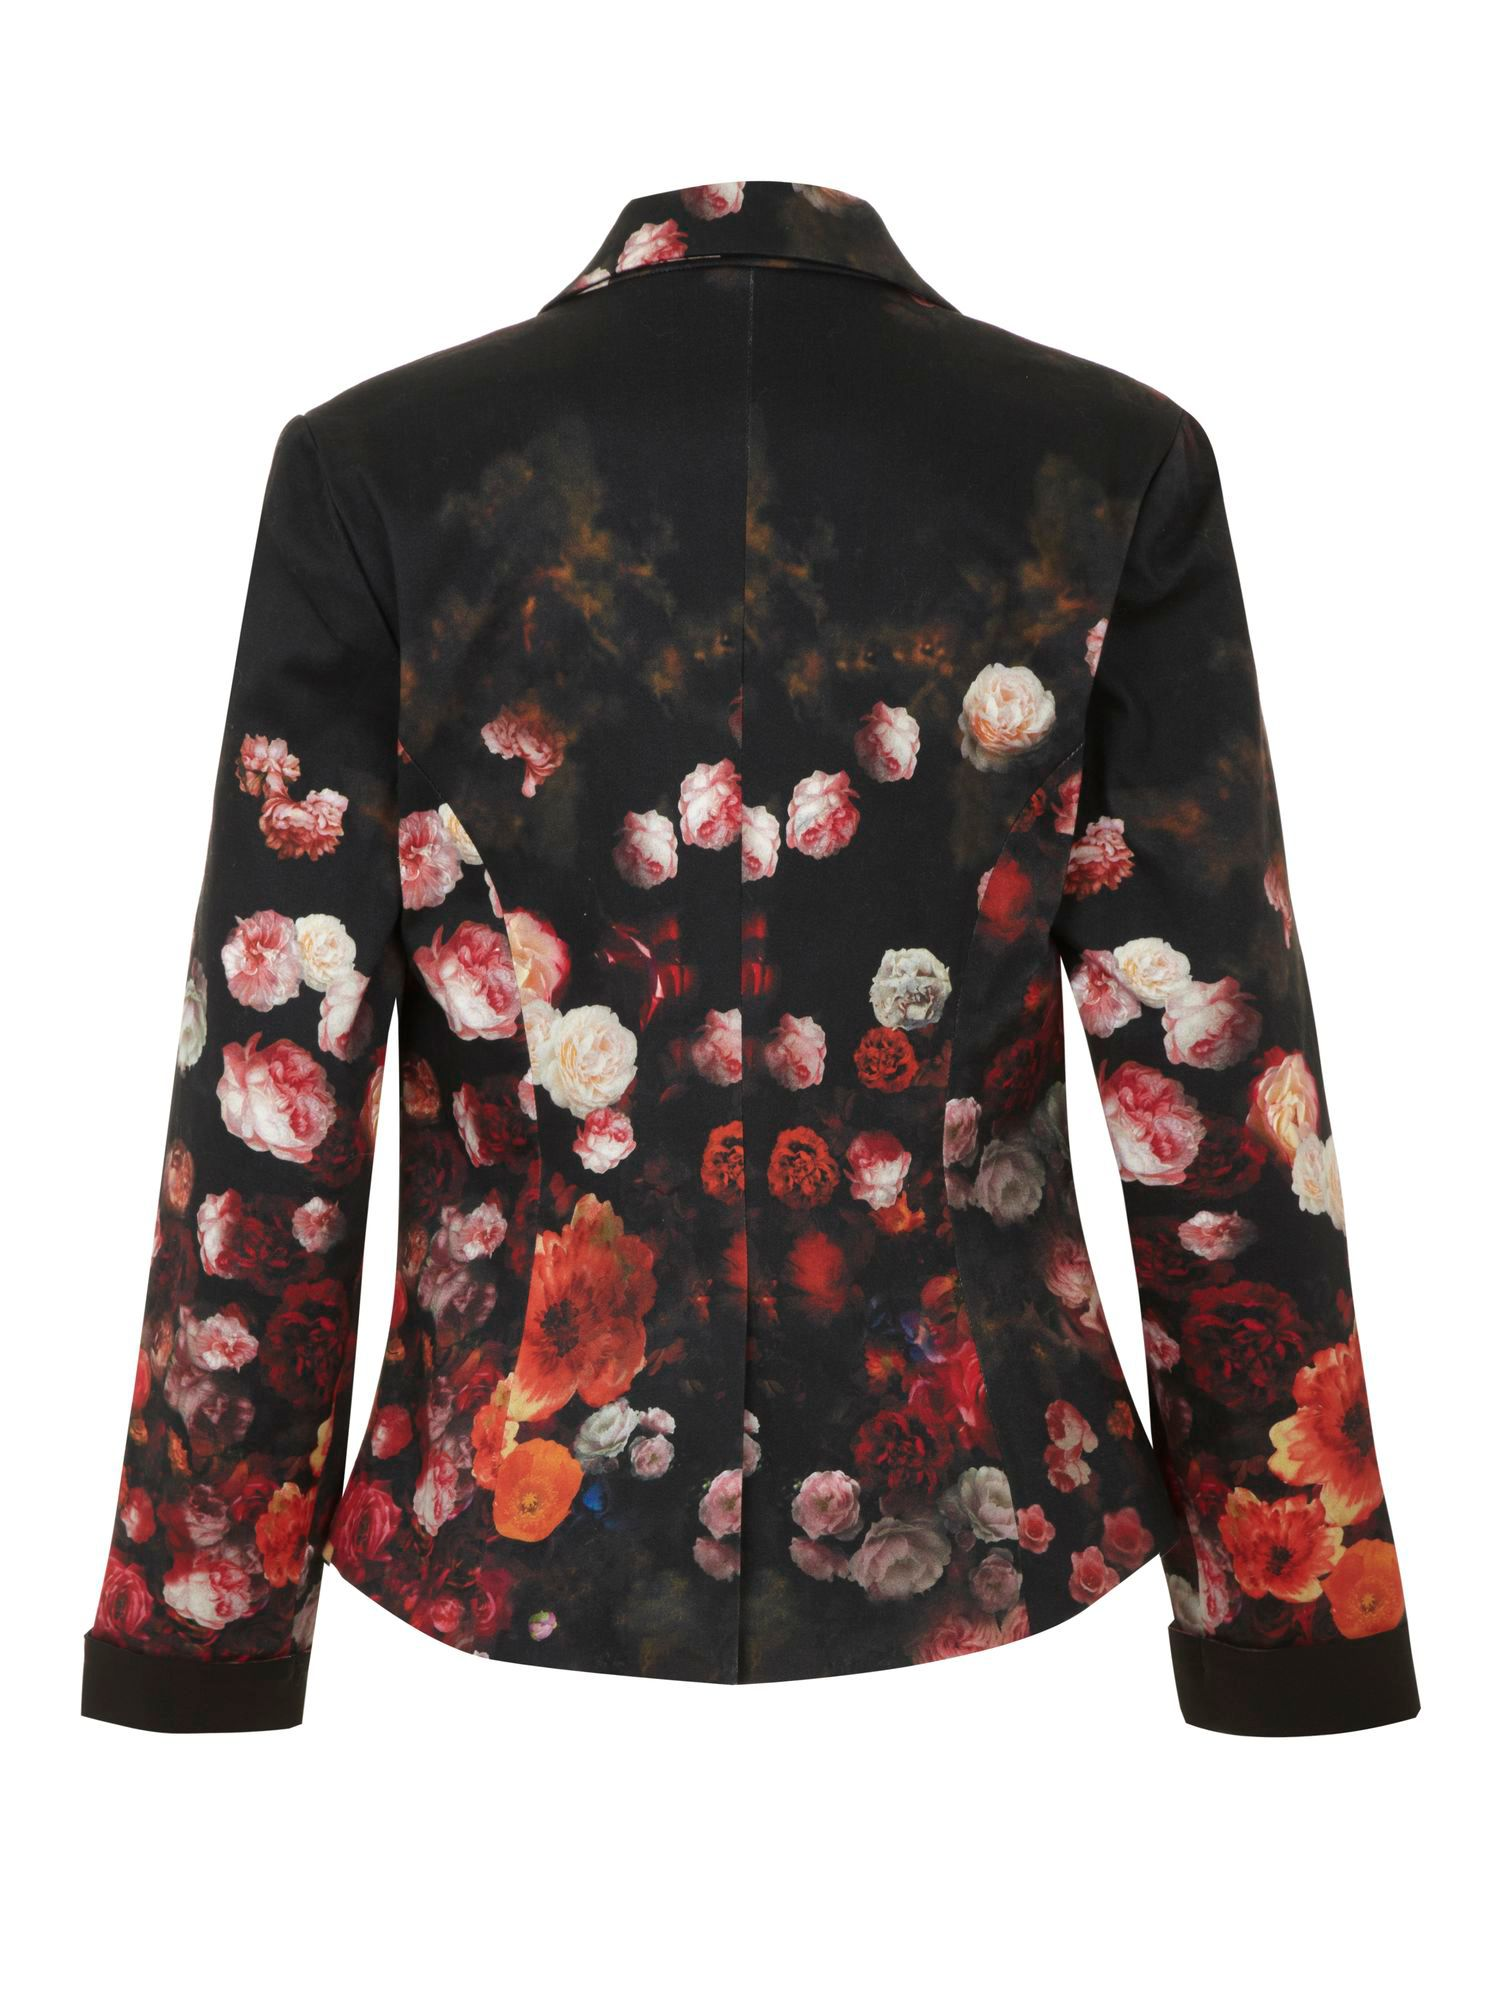 The Funky Florals Jacket